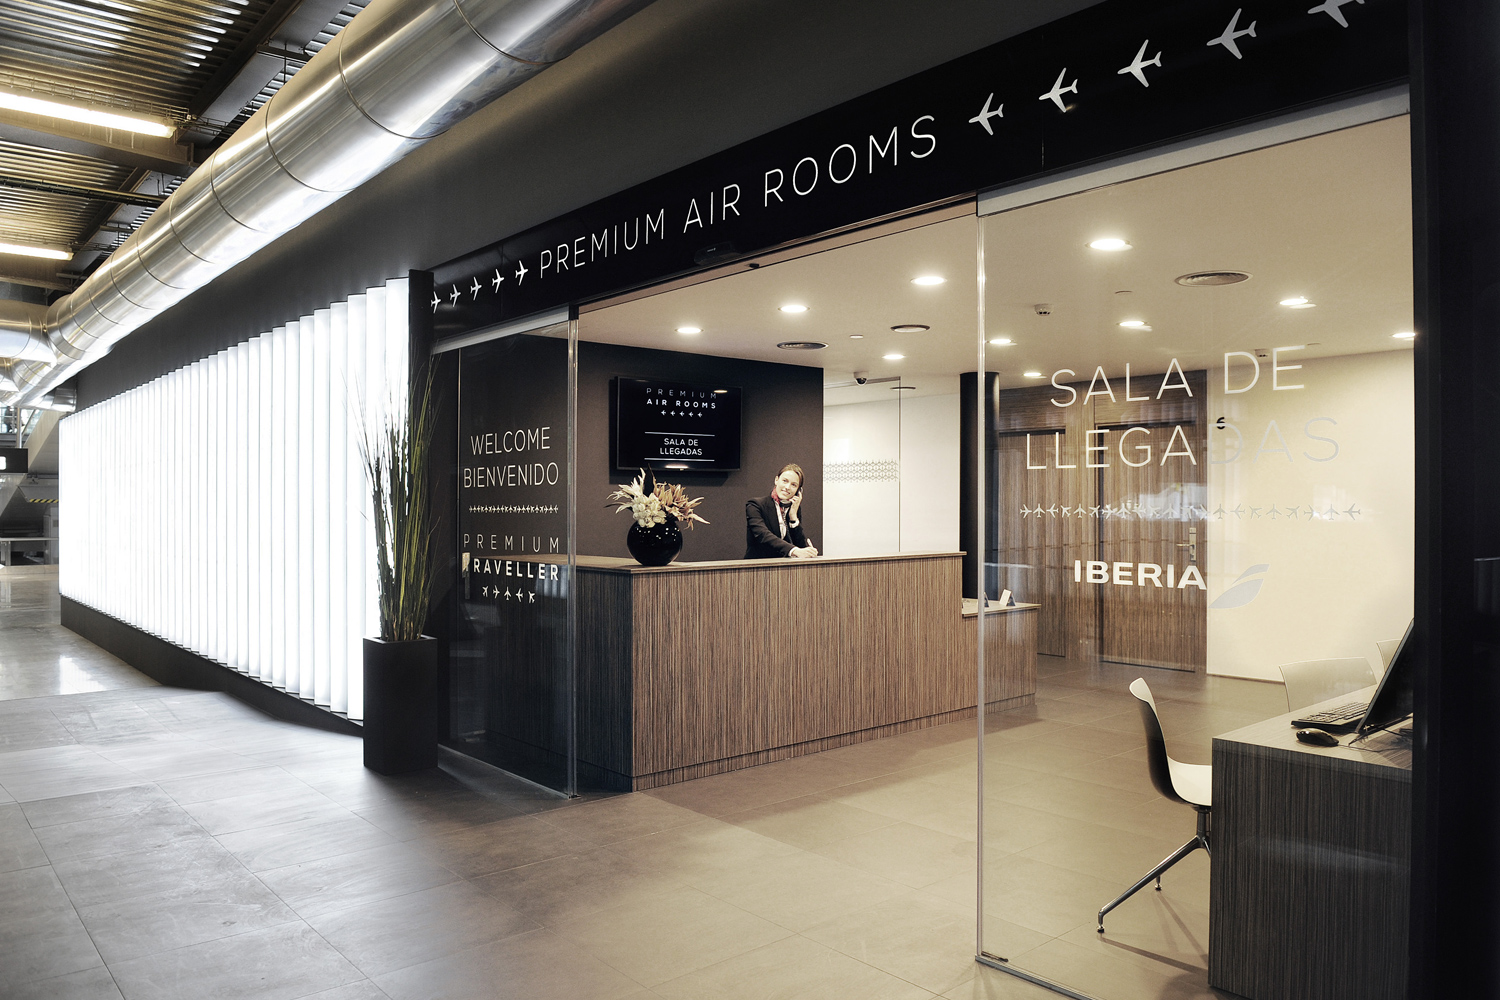 AIR ROOMS T4 MAD UP TO YOU STUDIO AIRPORT HOSPITALITY & LEISURE INTERIOR DESIGN